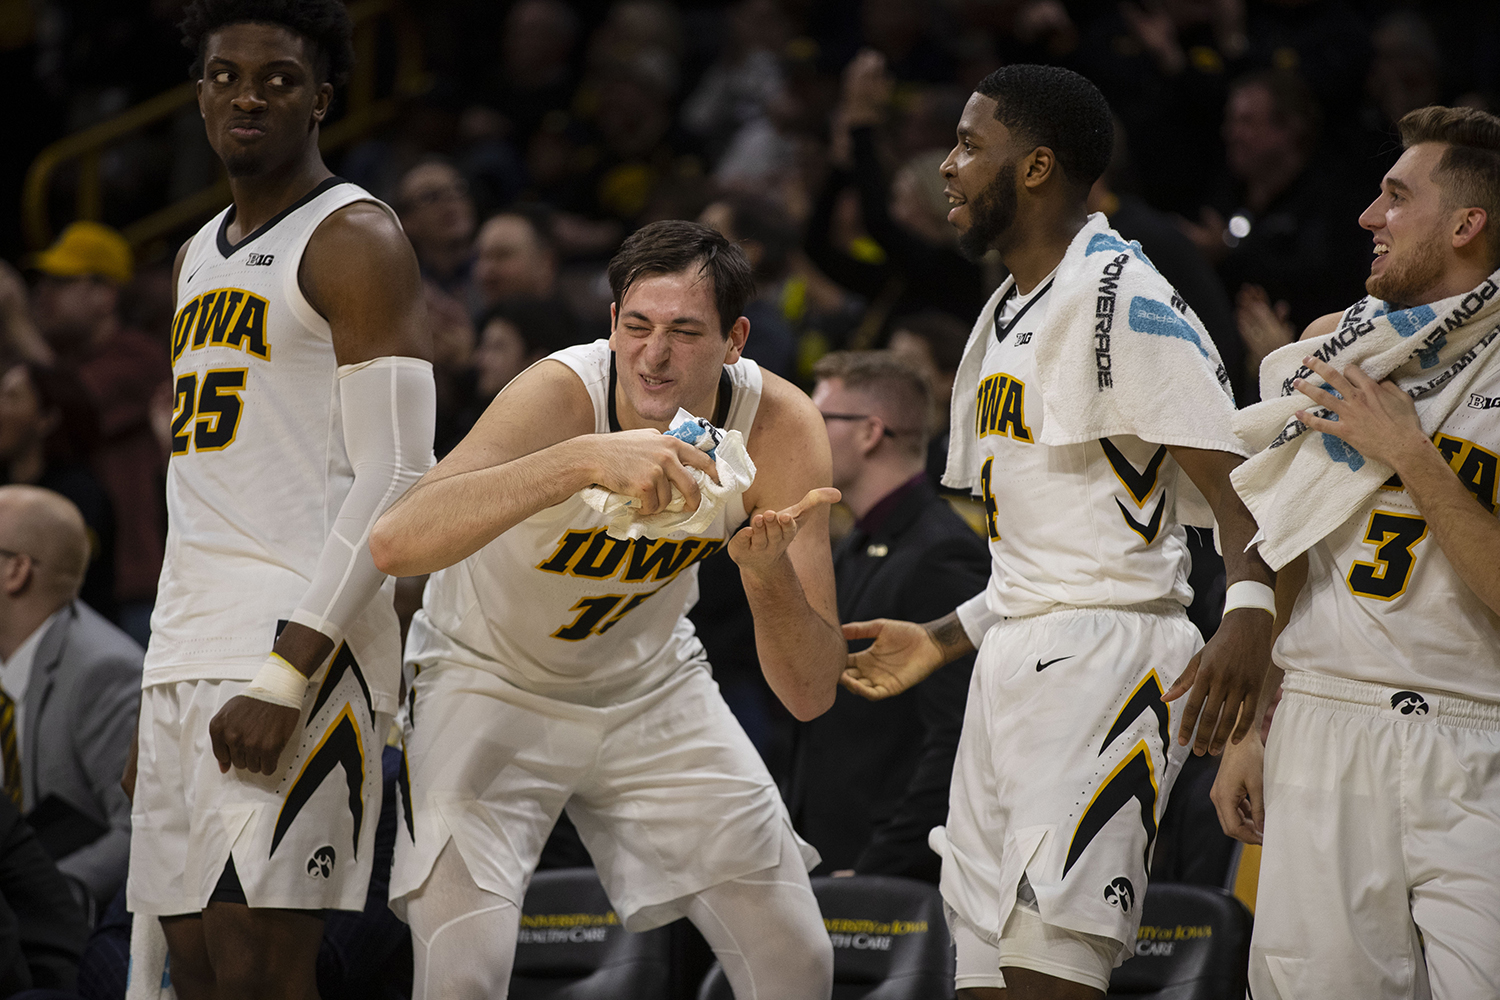 Iowa+forward+Ryan+Kriener+%2815%2C+second+from+left%29+%22eats%22+in+celebration+during+the+Iowa%2FMichigan+men%27s+basketball+game+at+Carver-Hawkeye+Arena+on+Friday%2C+February+1%2C+2019.+The+Hawkeyes+took+down+the+No.+5+ranked+Wolverines%2C+74-59.+